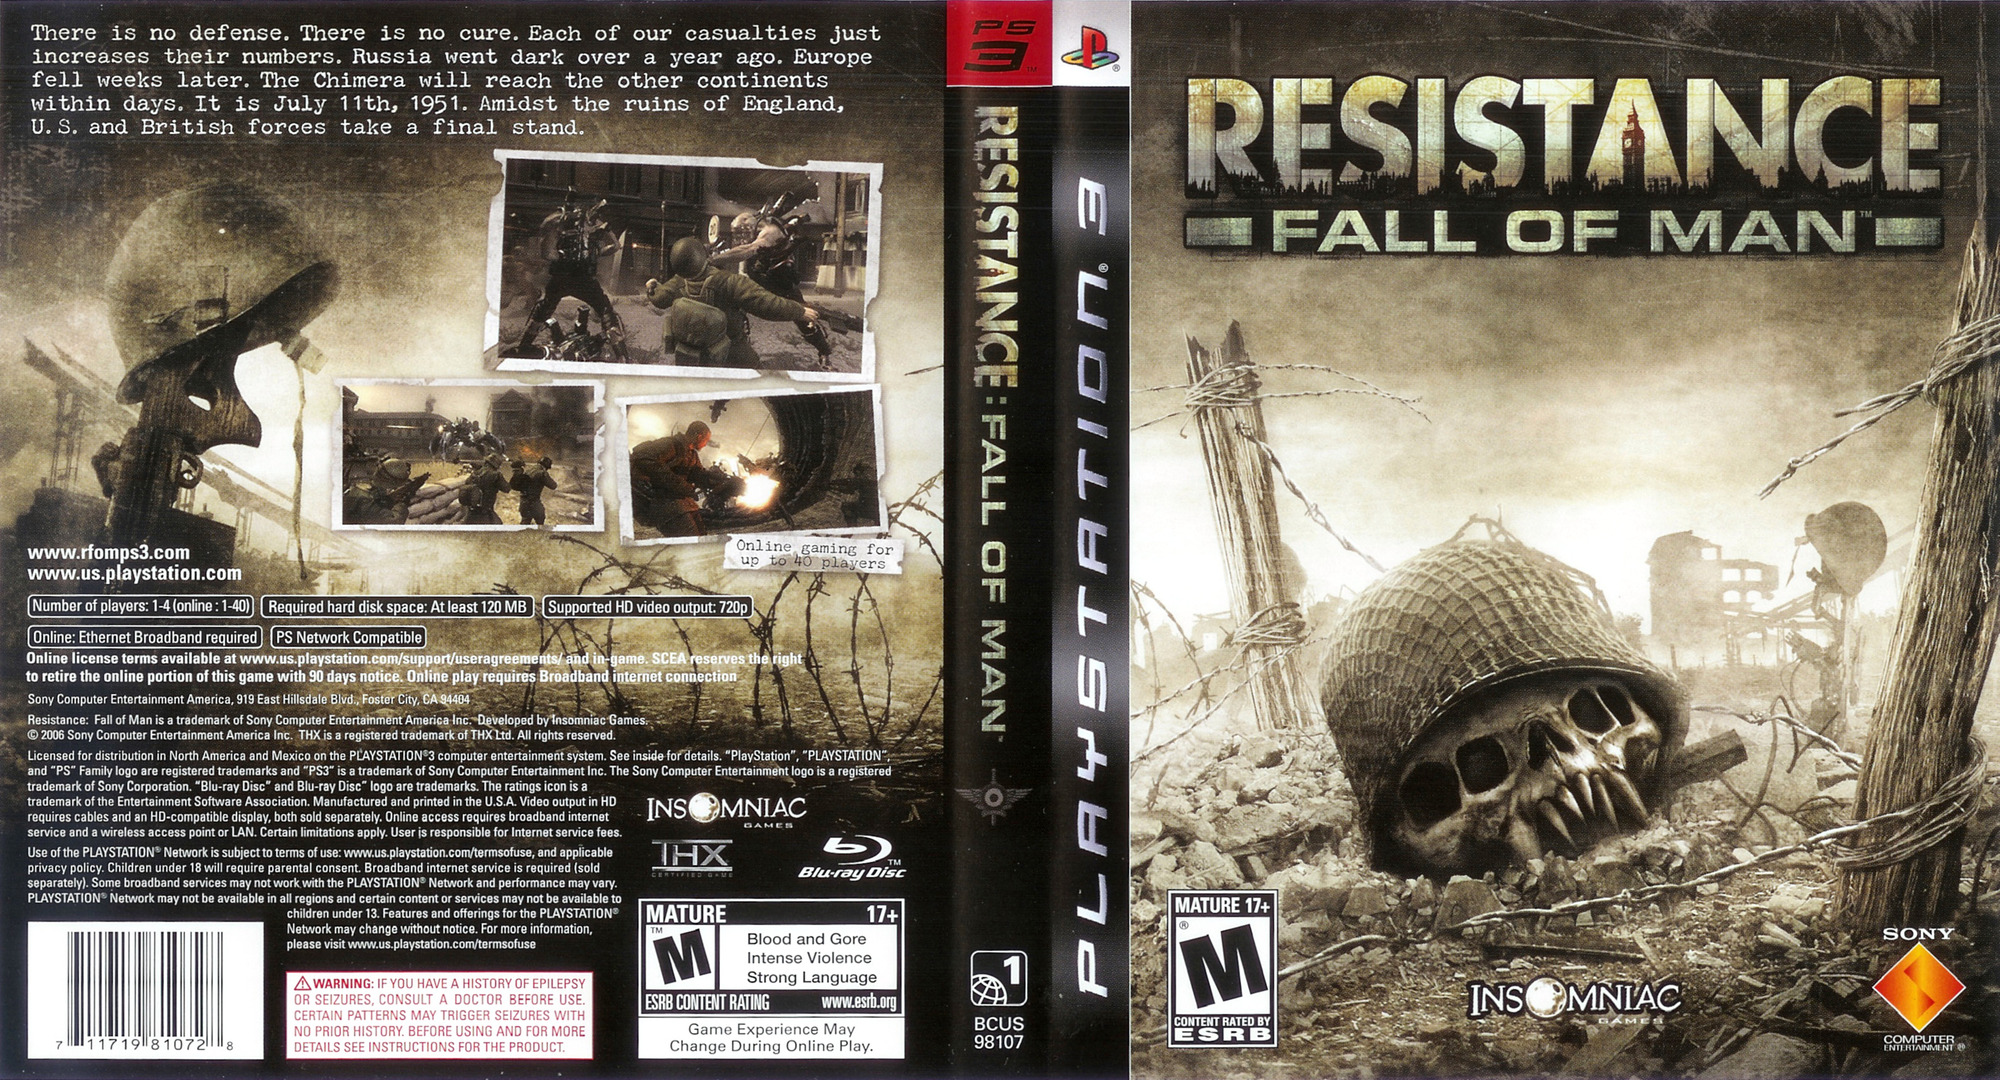 Resistance: Fall of Man PS3 coverfullHQ (BCUS98107)